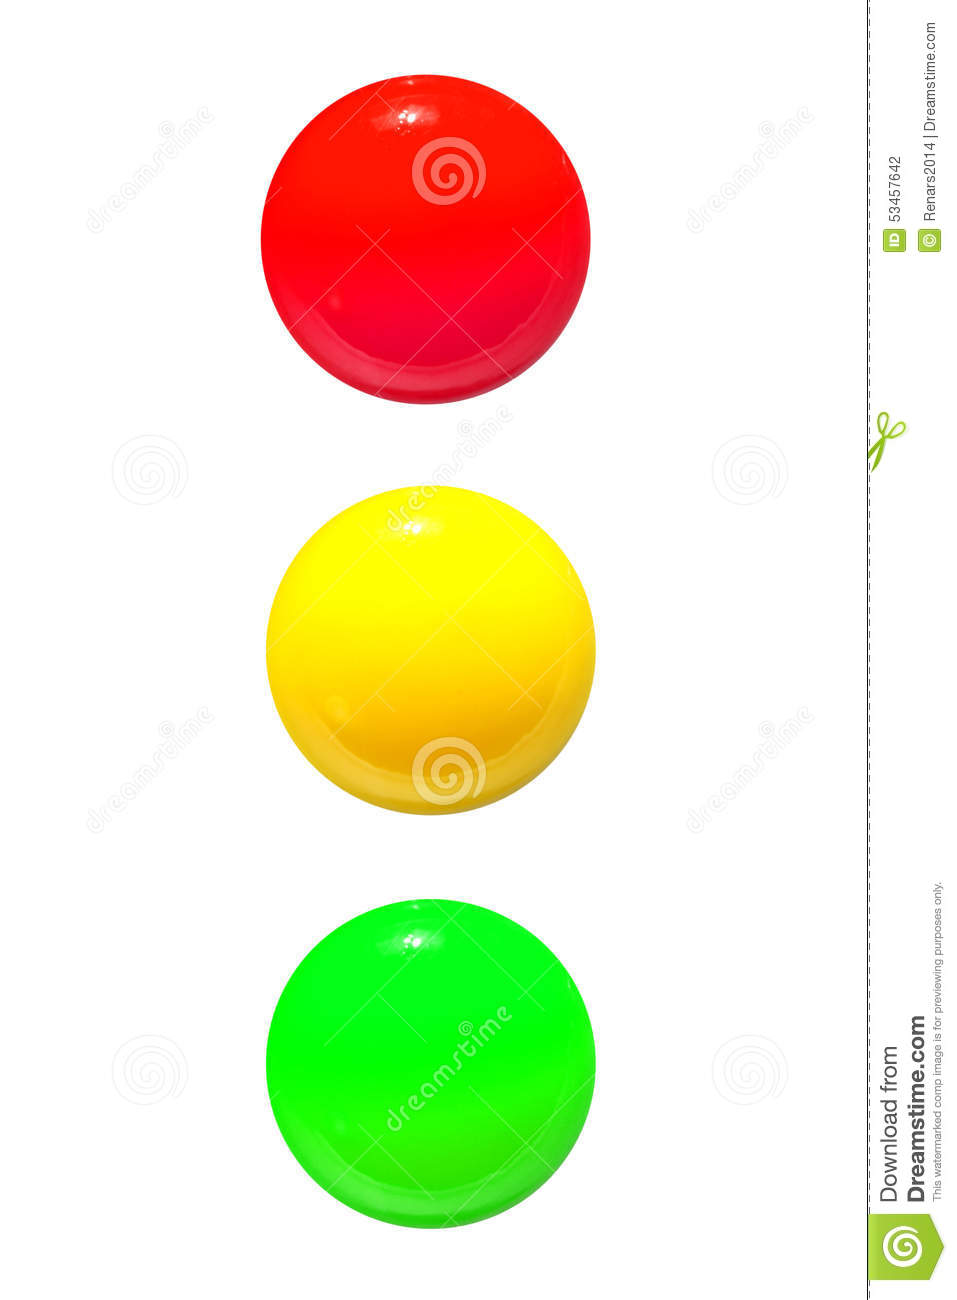 Traffic Lights Icon Red Yellow Green Stock Photo - Image of yellow ... for Traffic Light Red Icon  288gtk